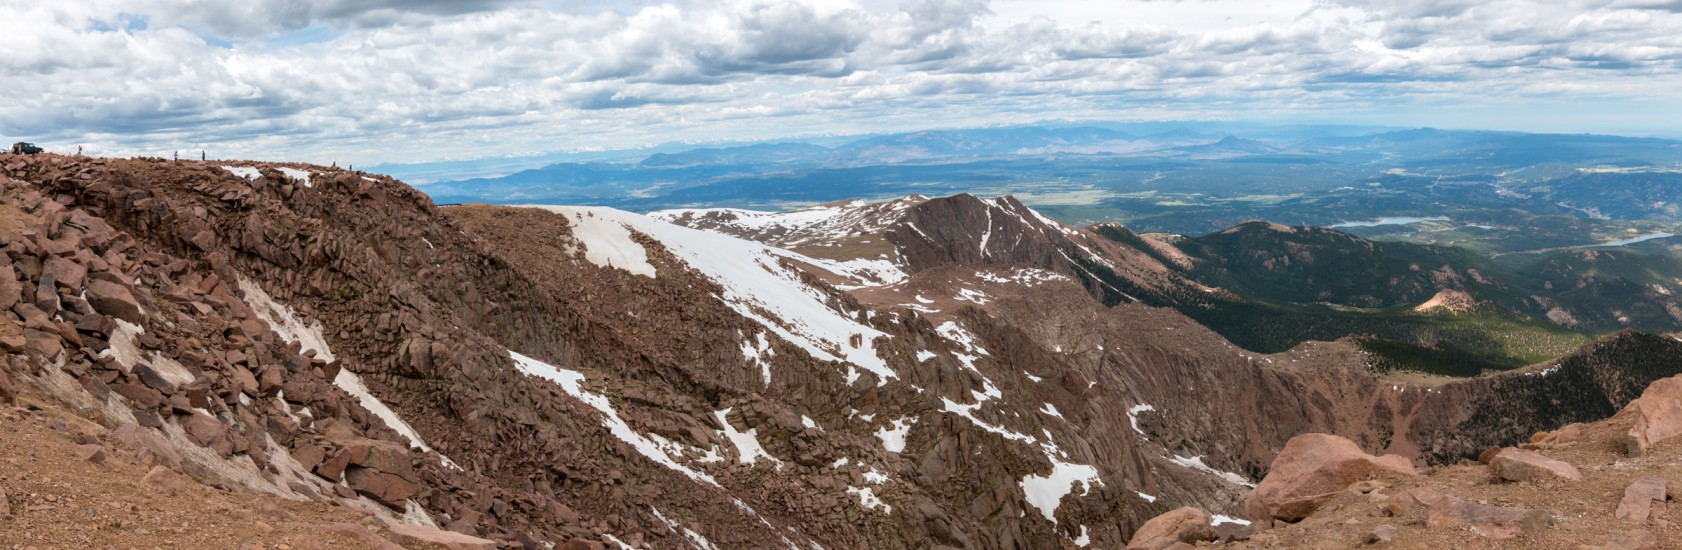 panoramic photo from the summit of Pikes Peak